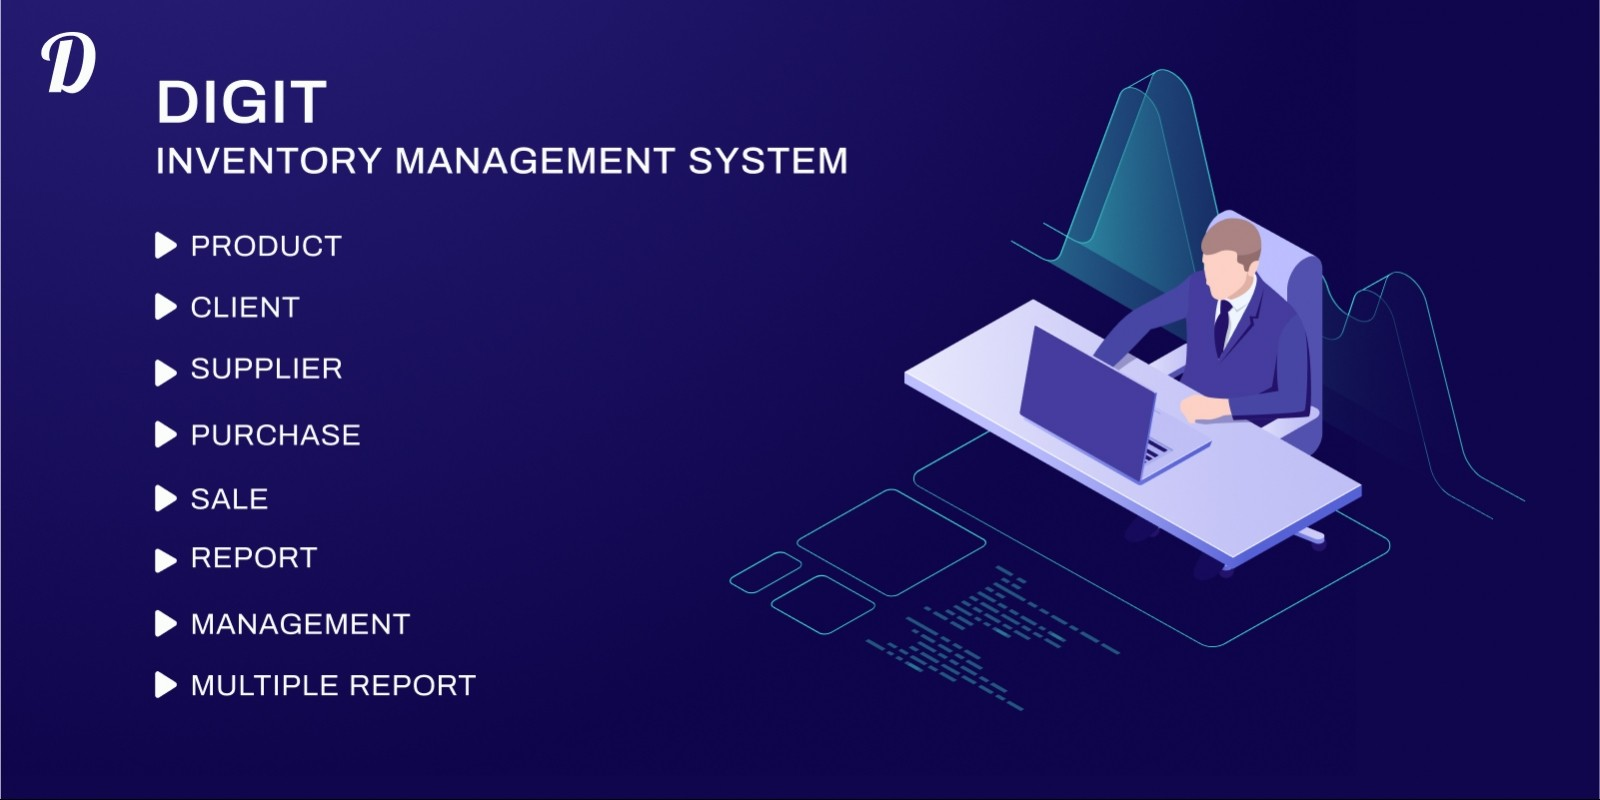 Digit Inventory Management System